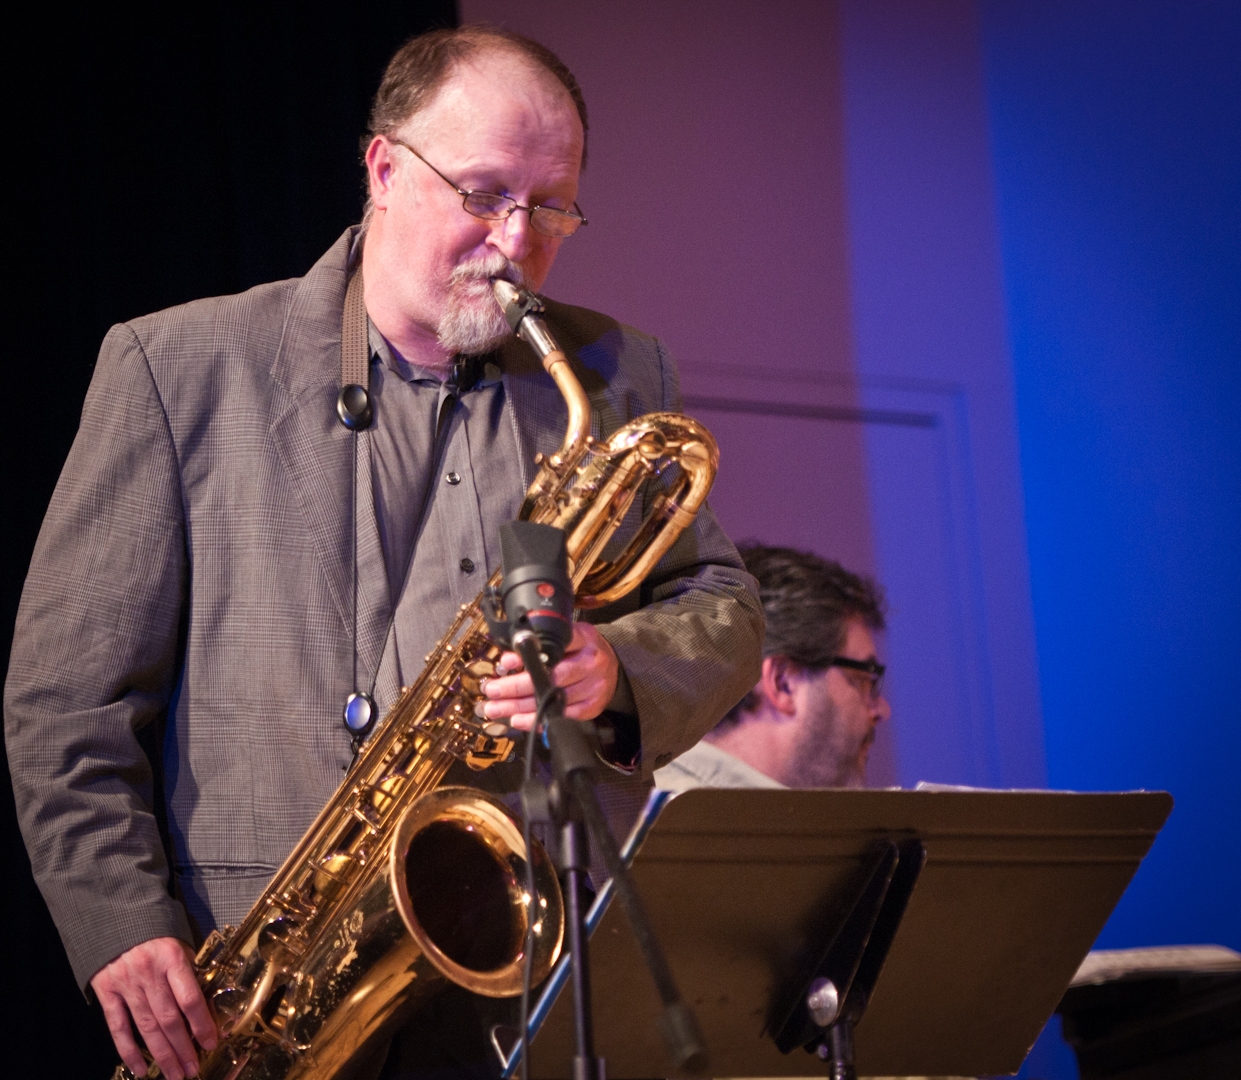 Charlie Kohlhase with the Either/Orchestra at the New School for Jazz